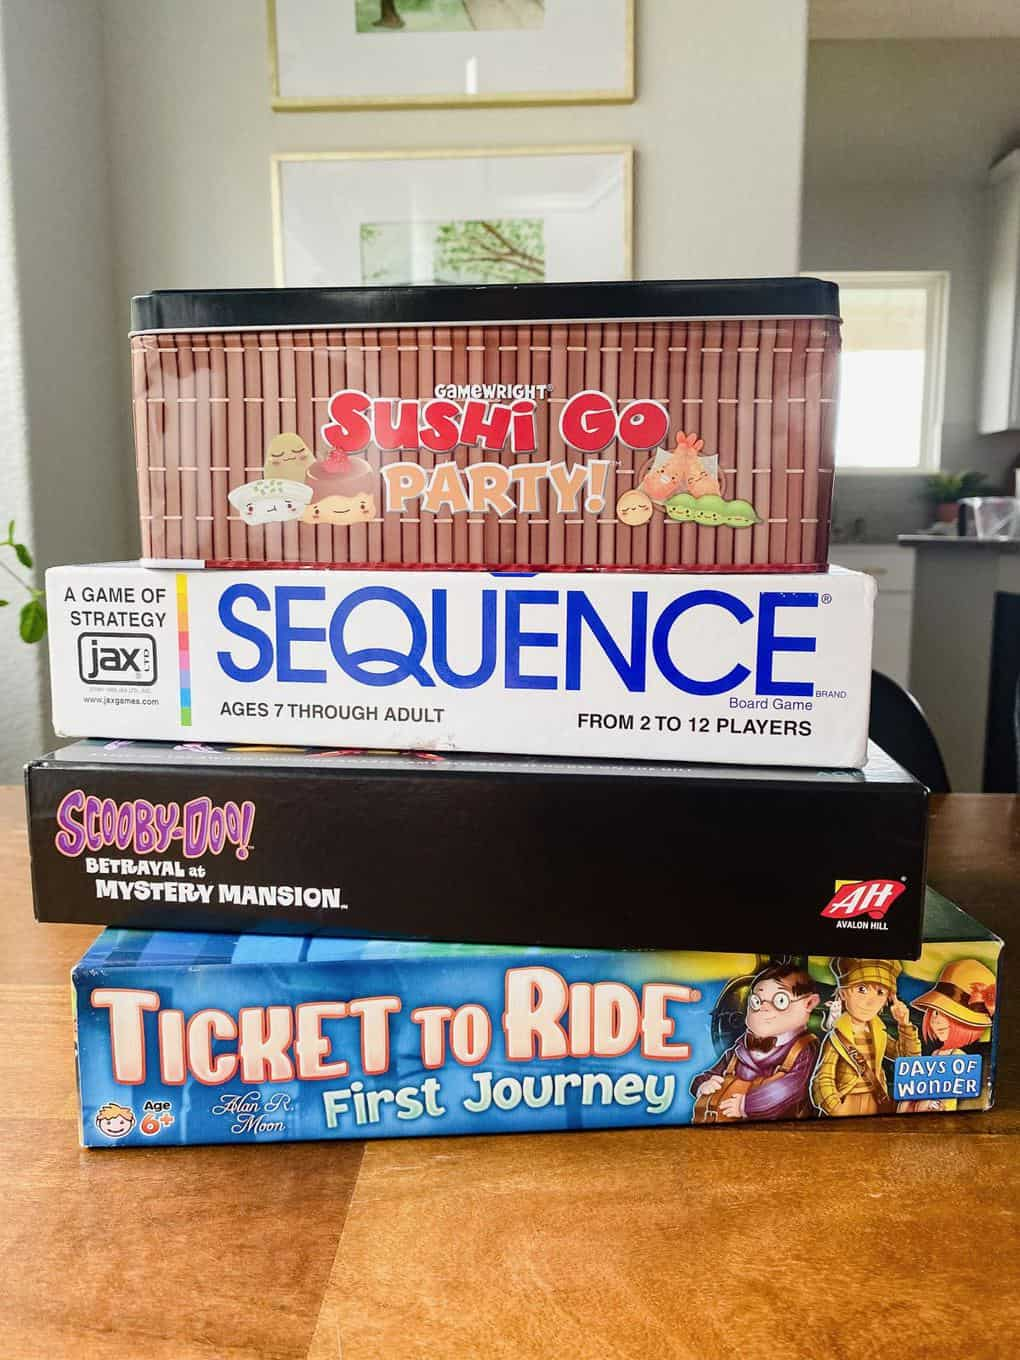 Stack of board games for kids, including Ticket to Ride First Journey, Betrayal at Mystery Mansion, Sequence, and Sushi Go